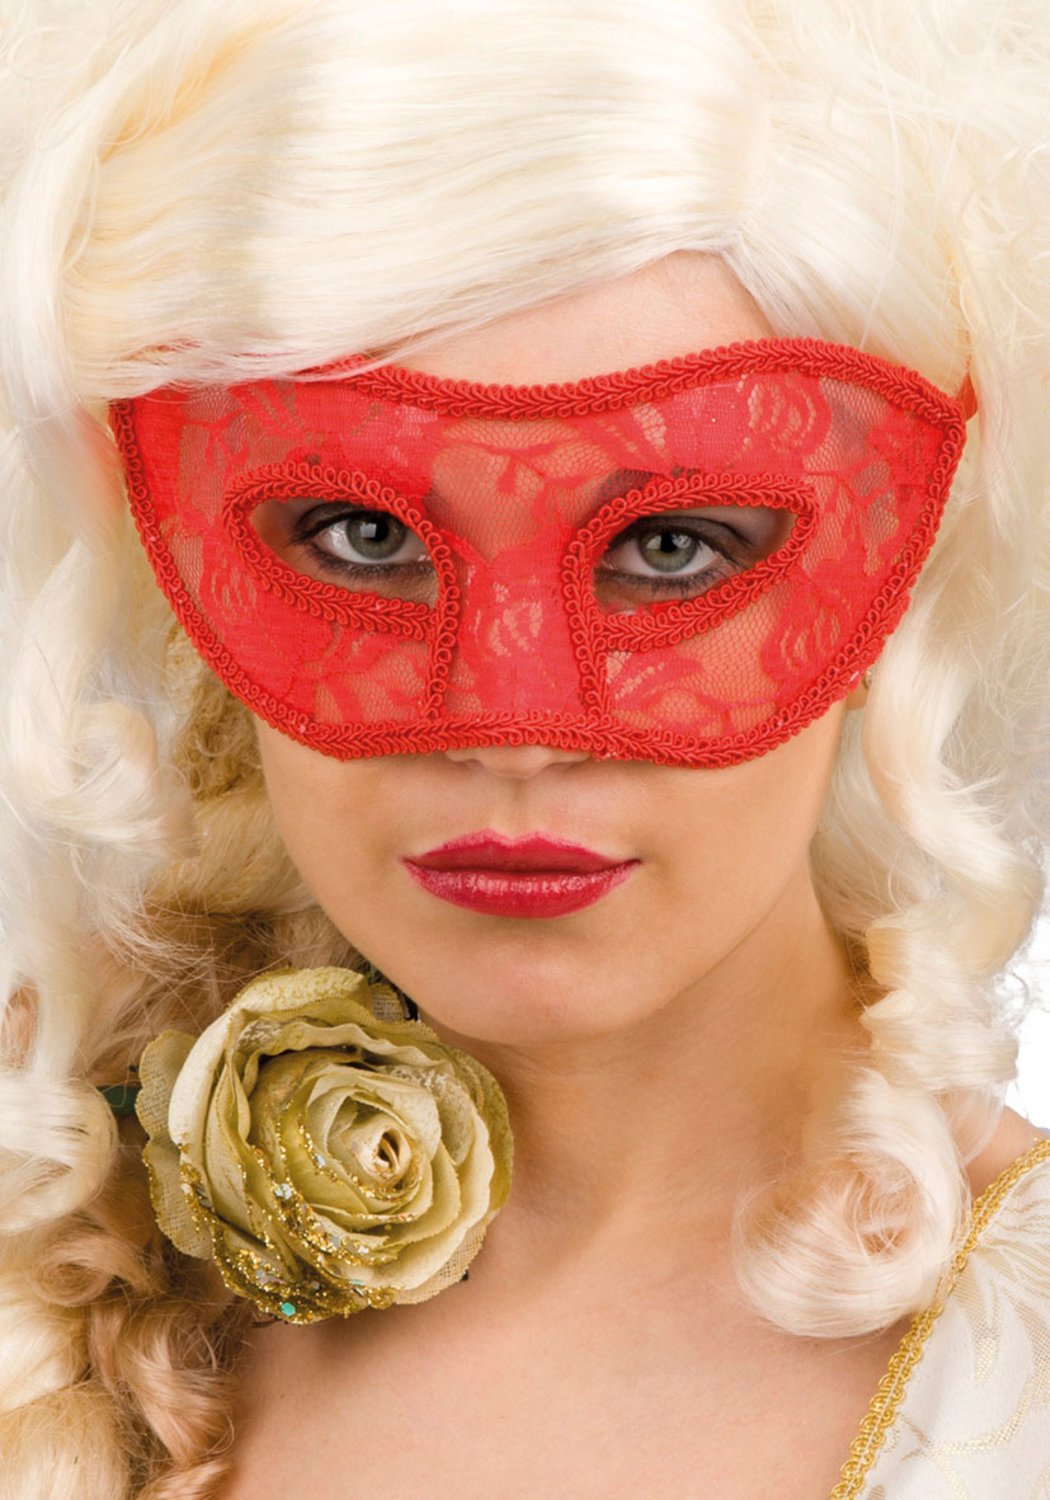 Ansiktsmask - Red lace mask